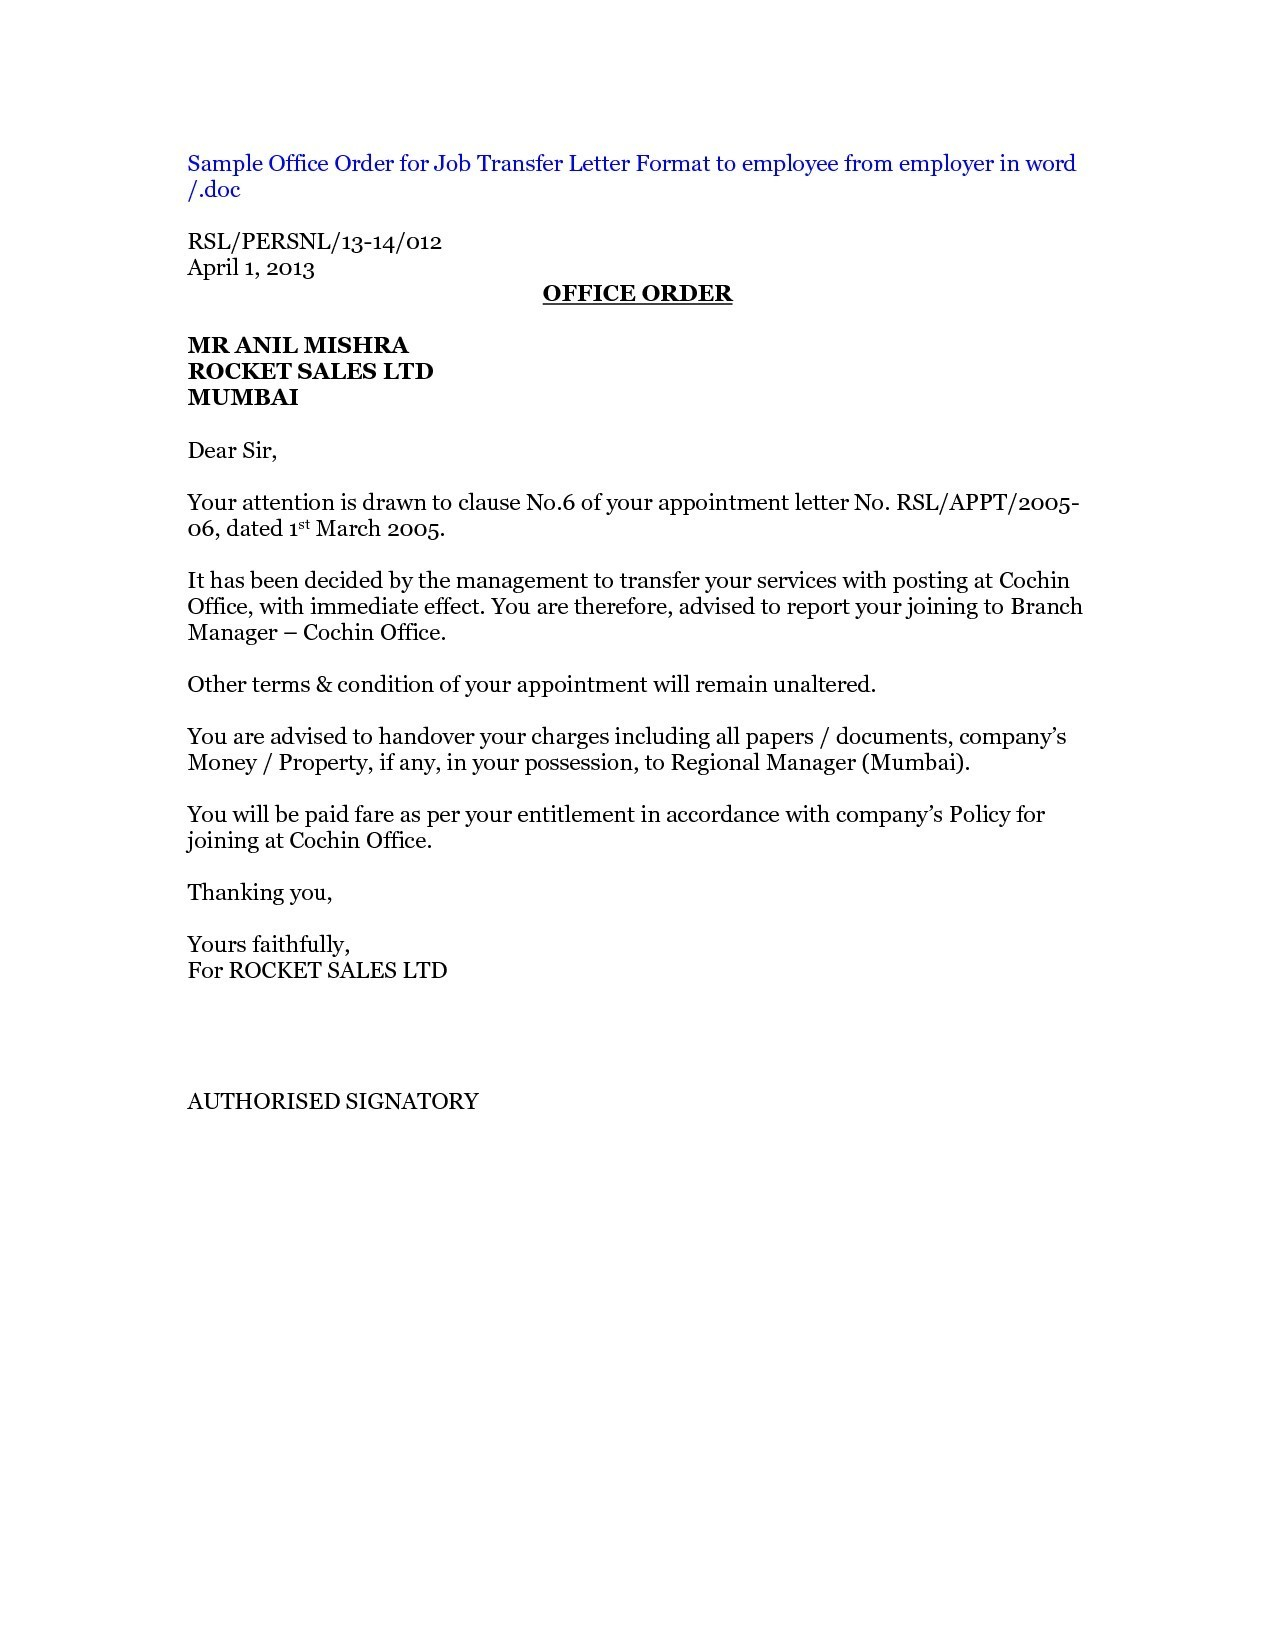 Employee Relocation Letter Template - Job Relocation Letter Sample Best Job Relocation Request Letter